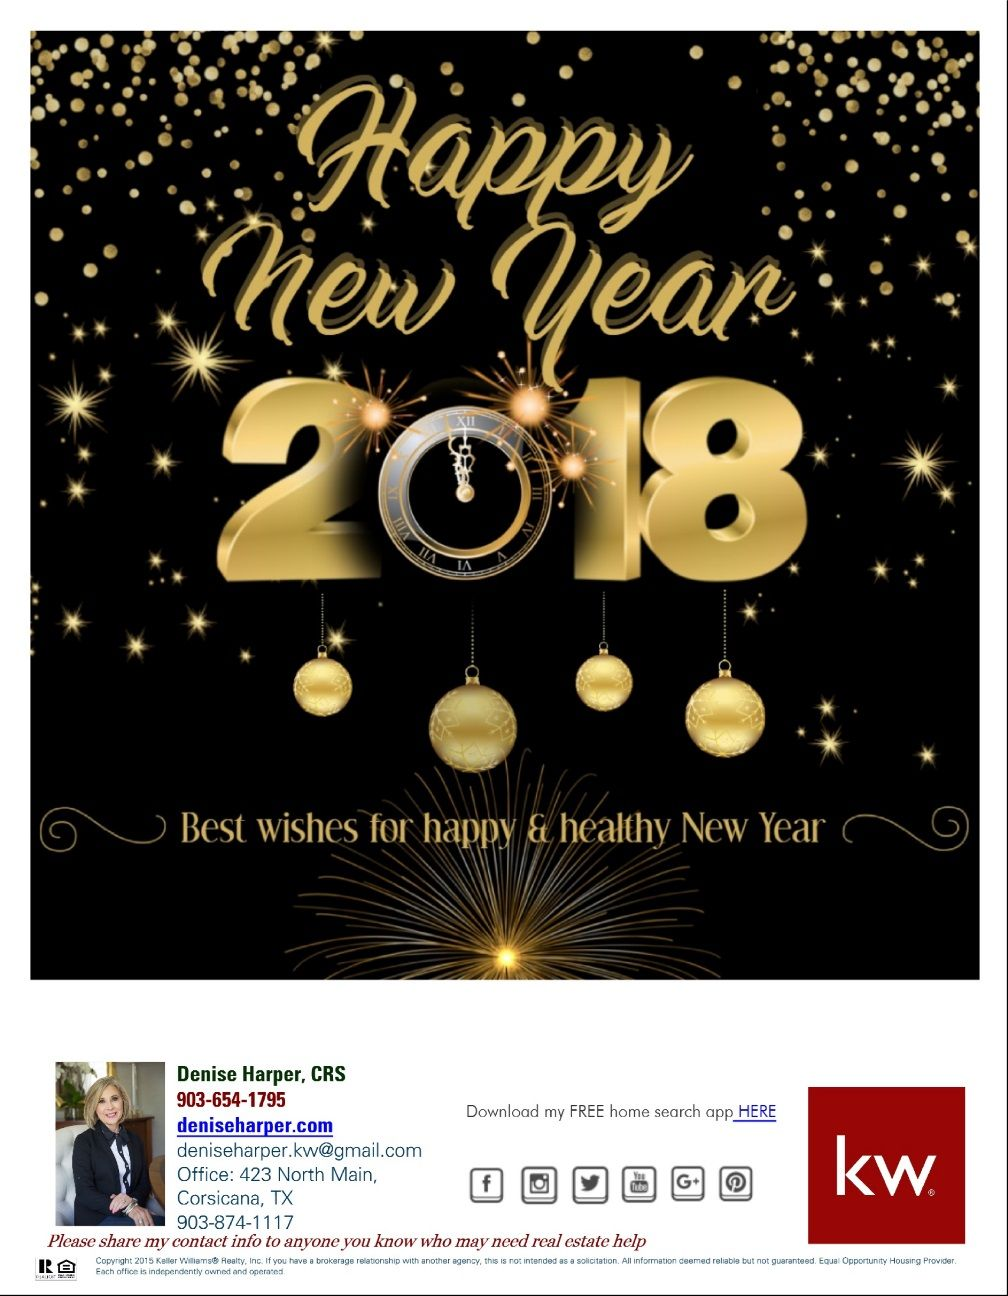 Welcome 2018 Happy New Year Corsicana Welcome 2018 Greetings